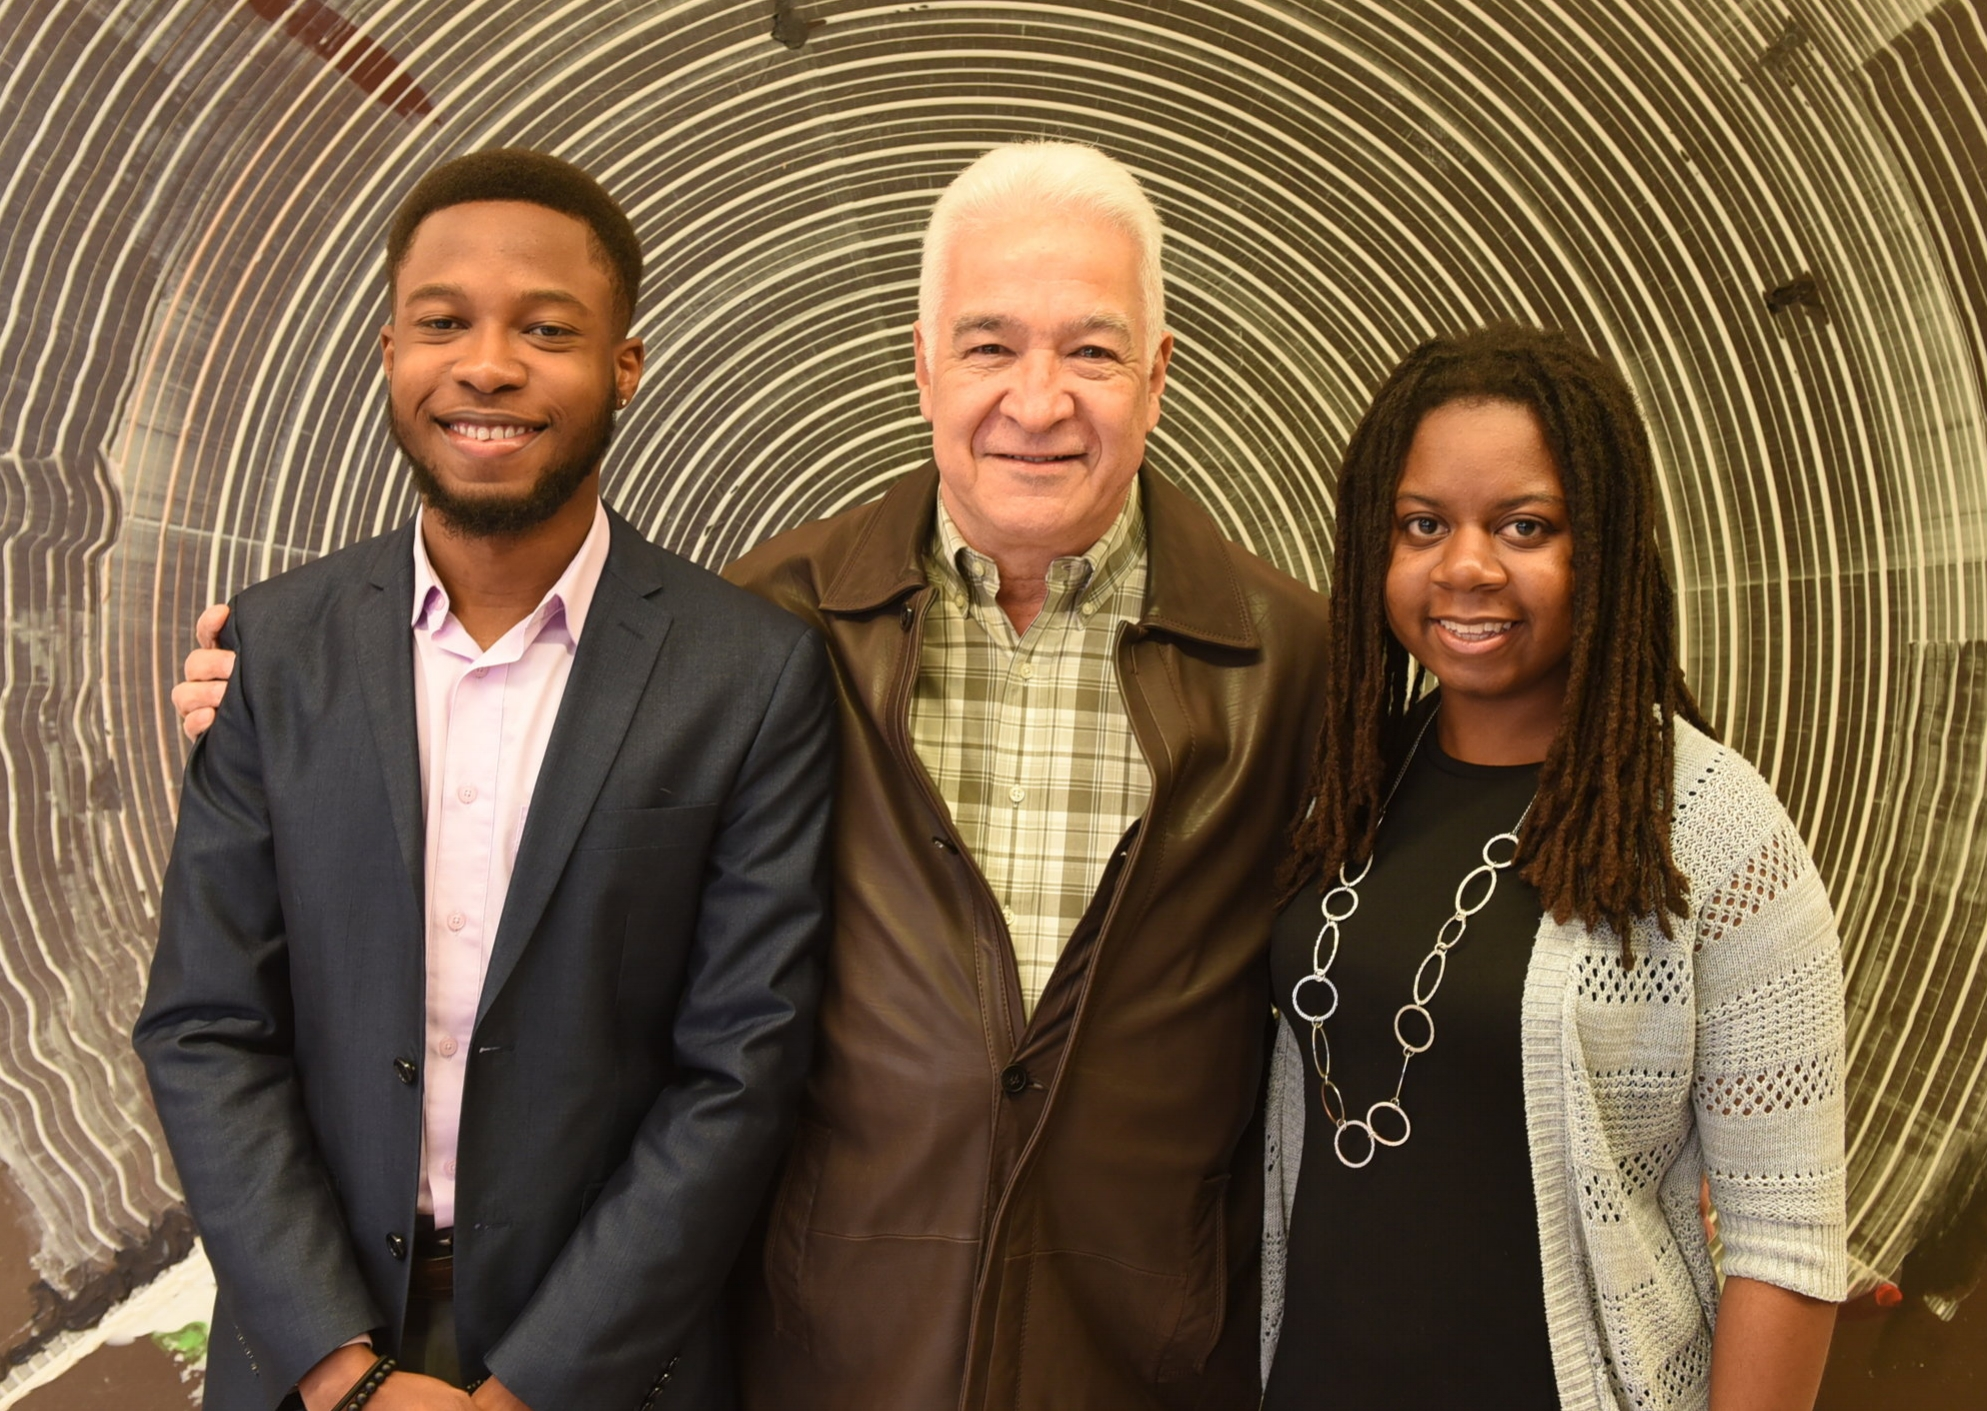 Entrepreneur Efrain Riera presented scholarships to Jaryd Christie and Syenne Holder